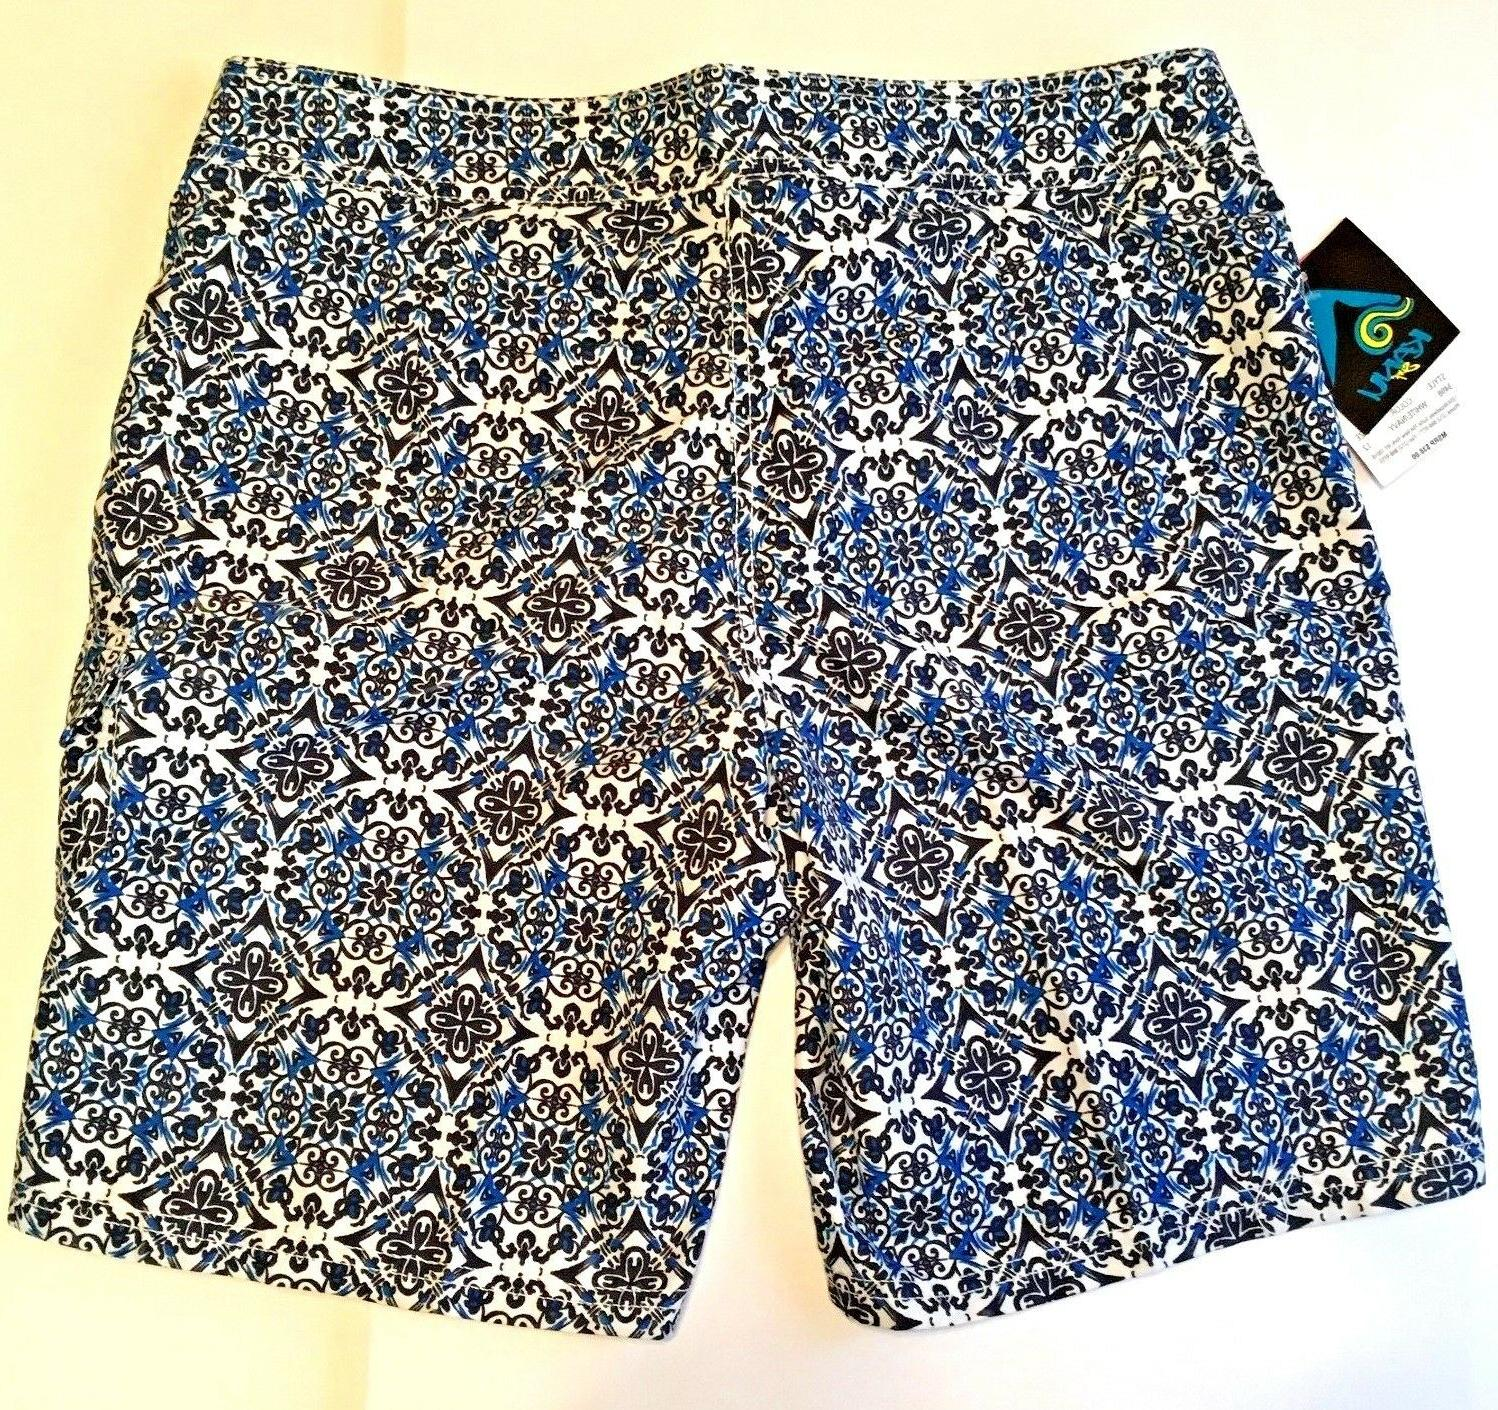 WOMAN'S BOARD SHORTS NEW WITH TAGS ATTACHED 12